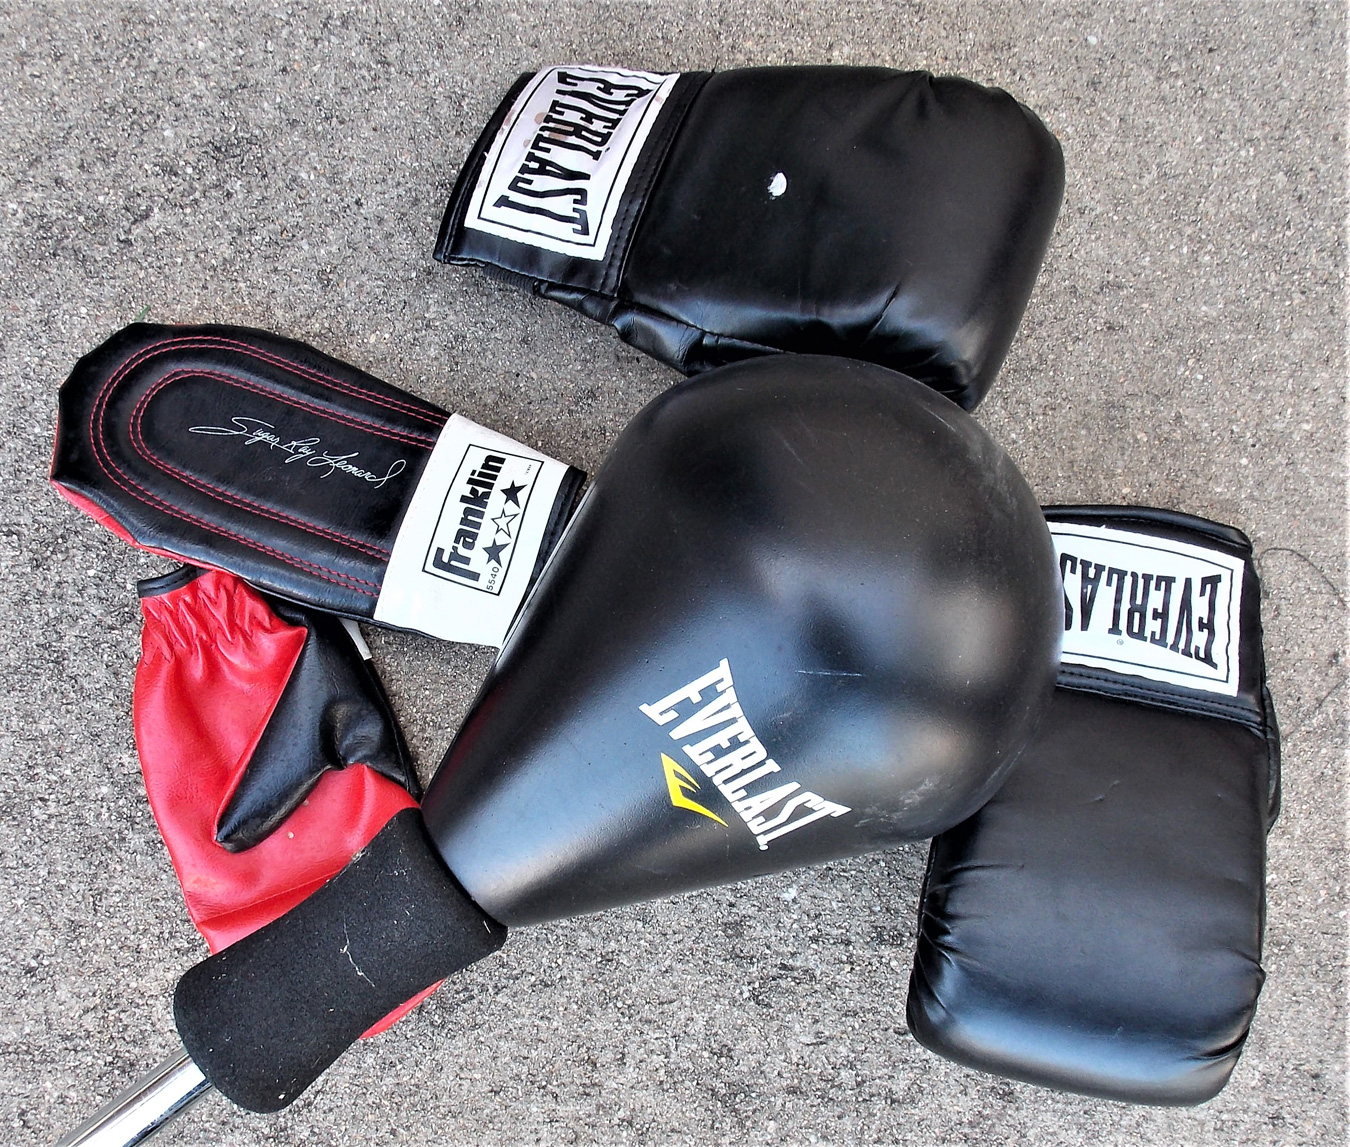 Everlast boxing gloves and gear